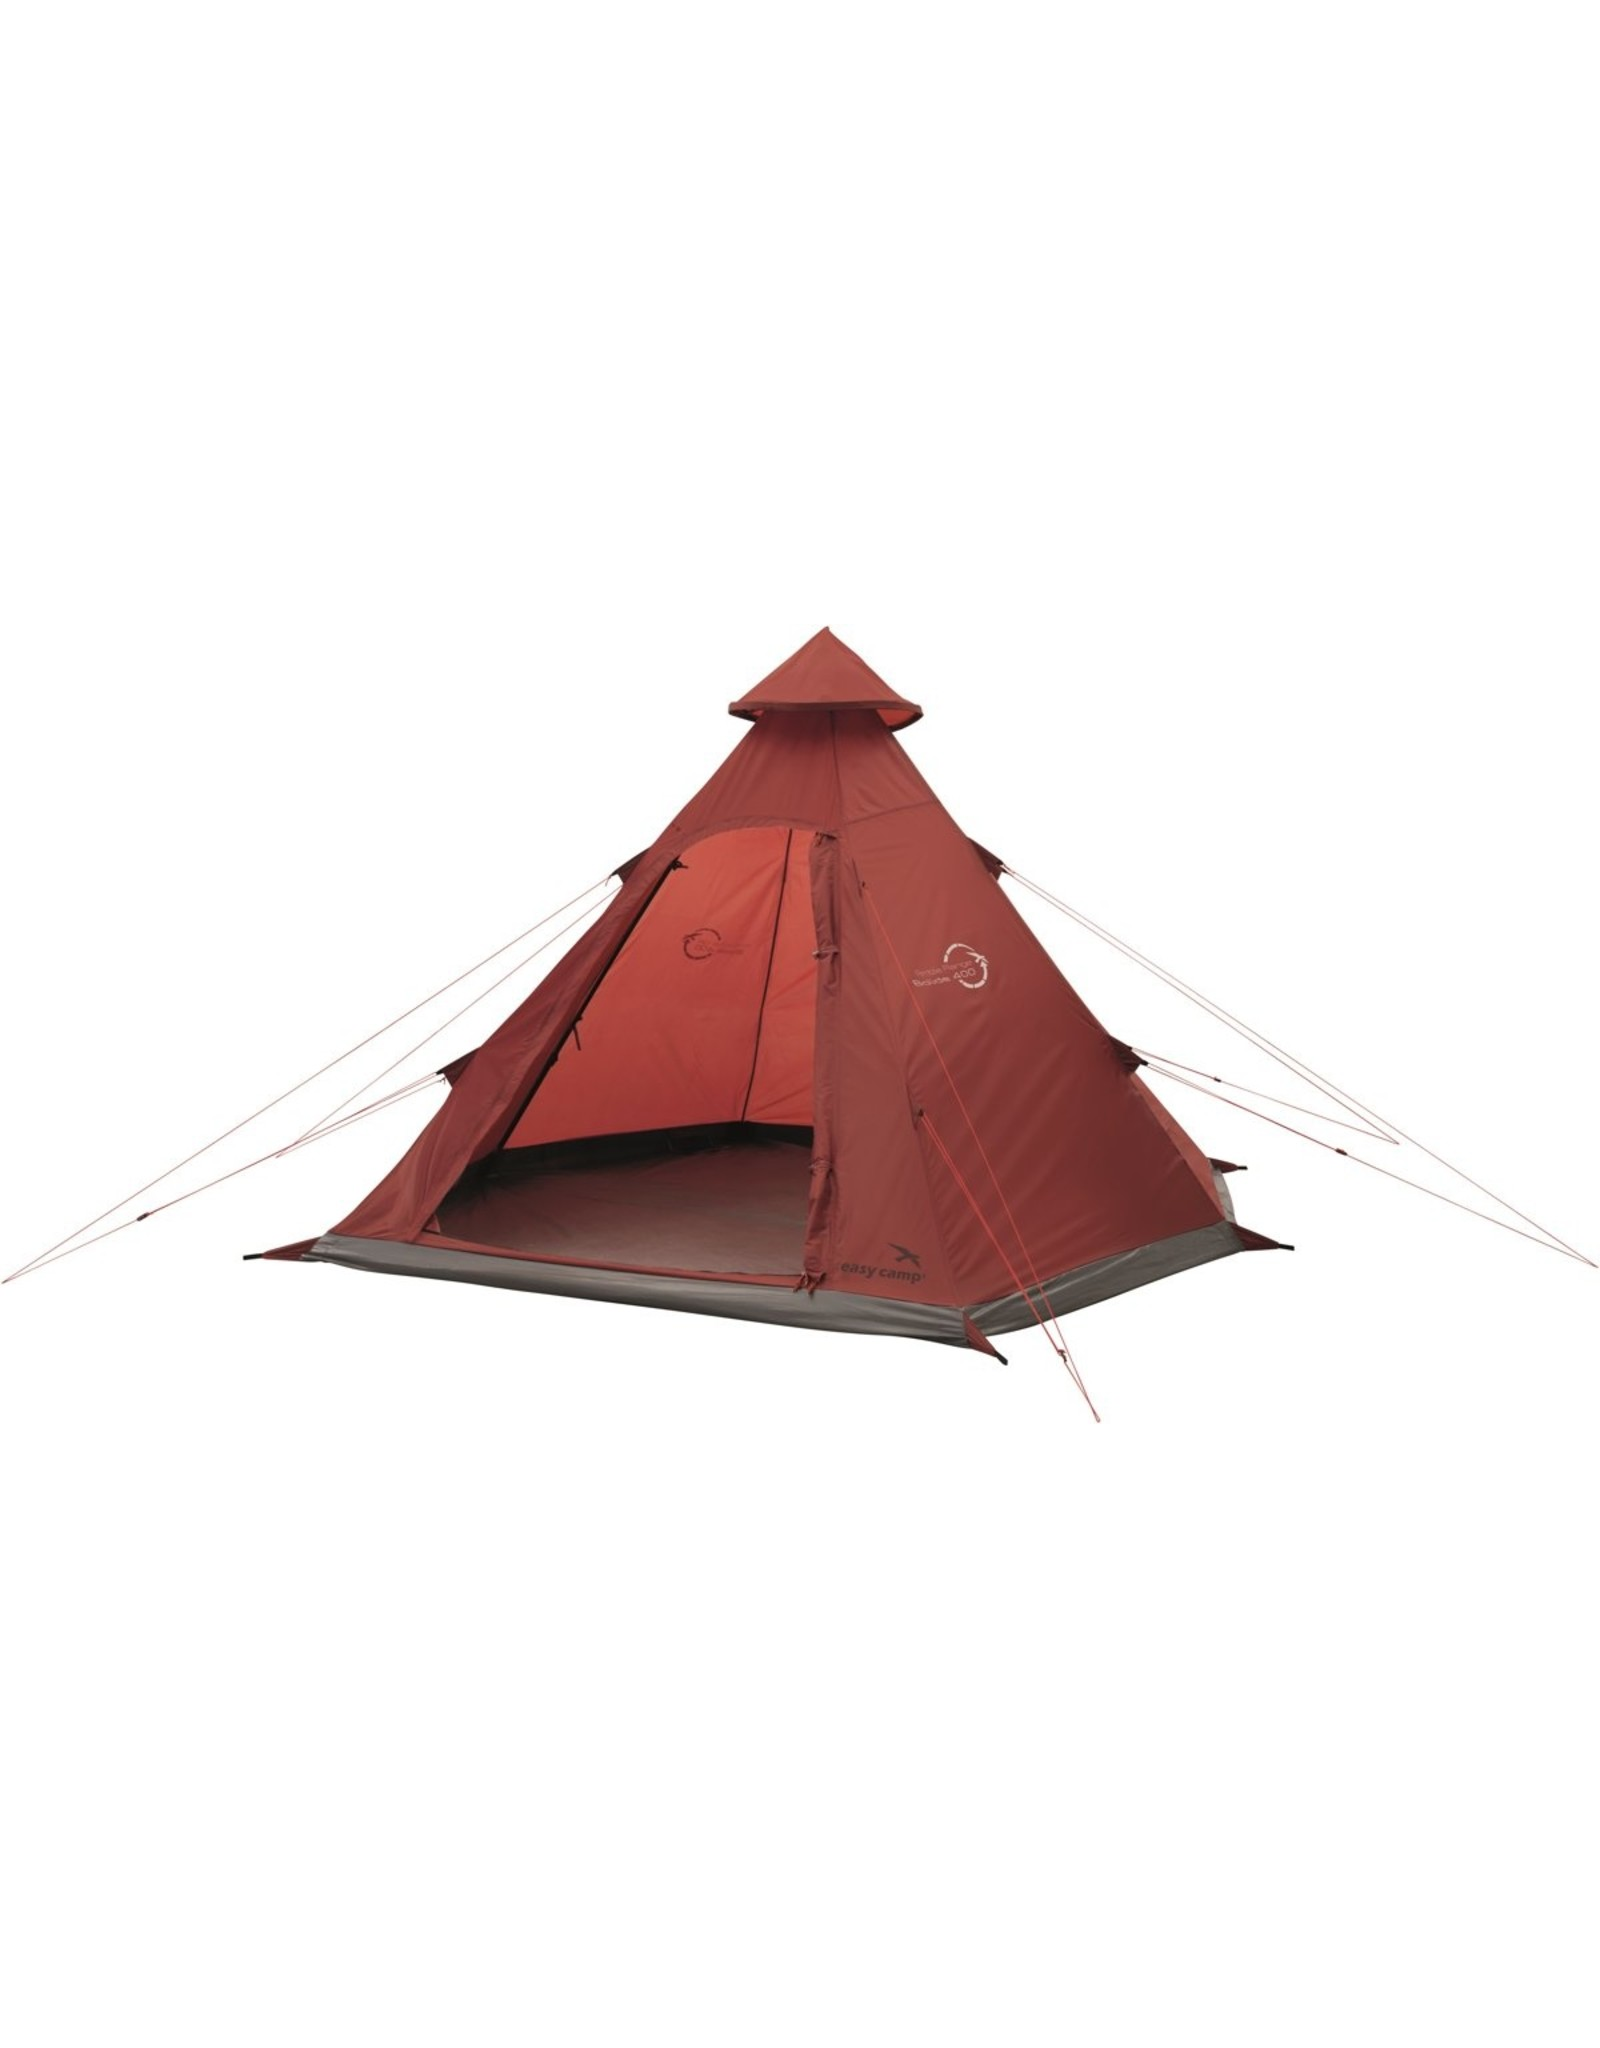 Easy Camp Easy Camp Tent Bolide 400